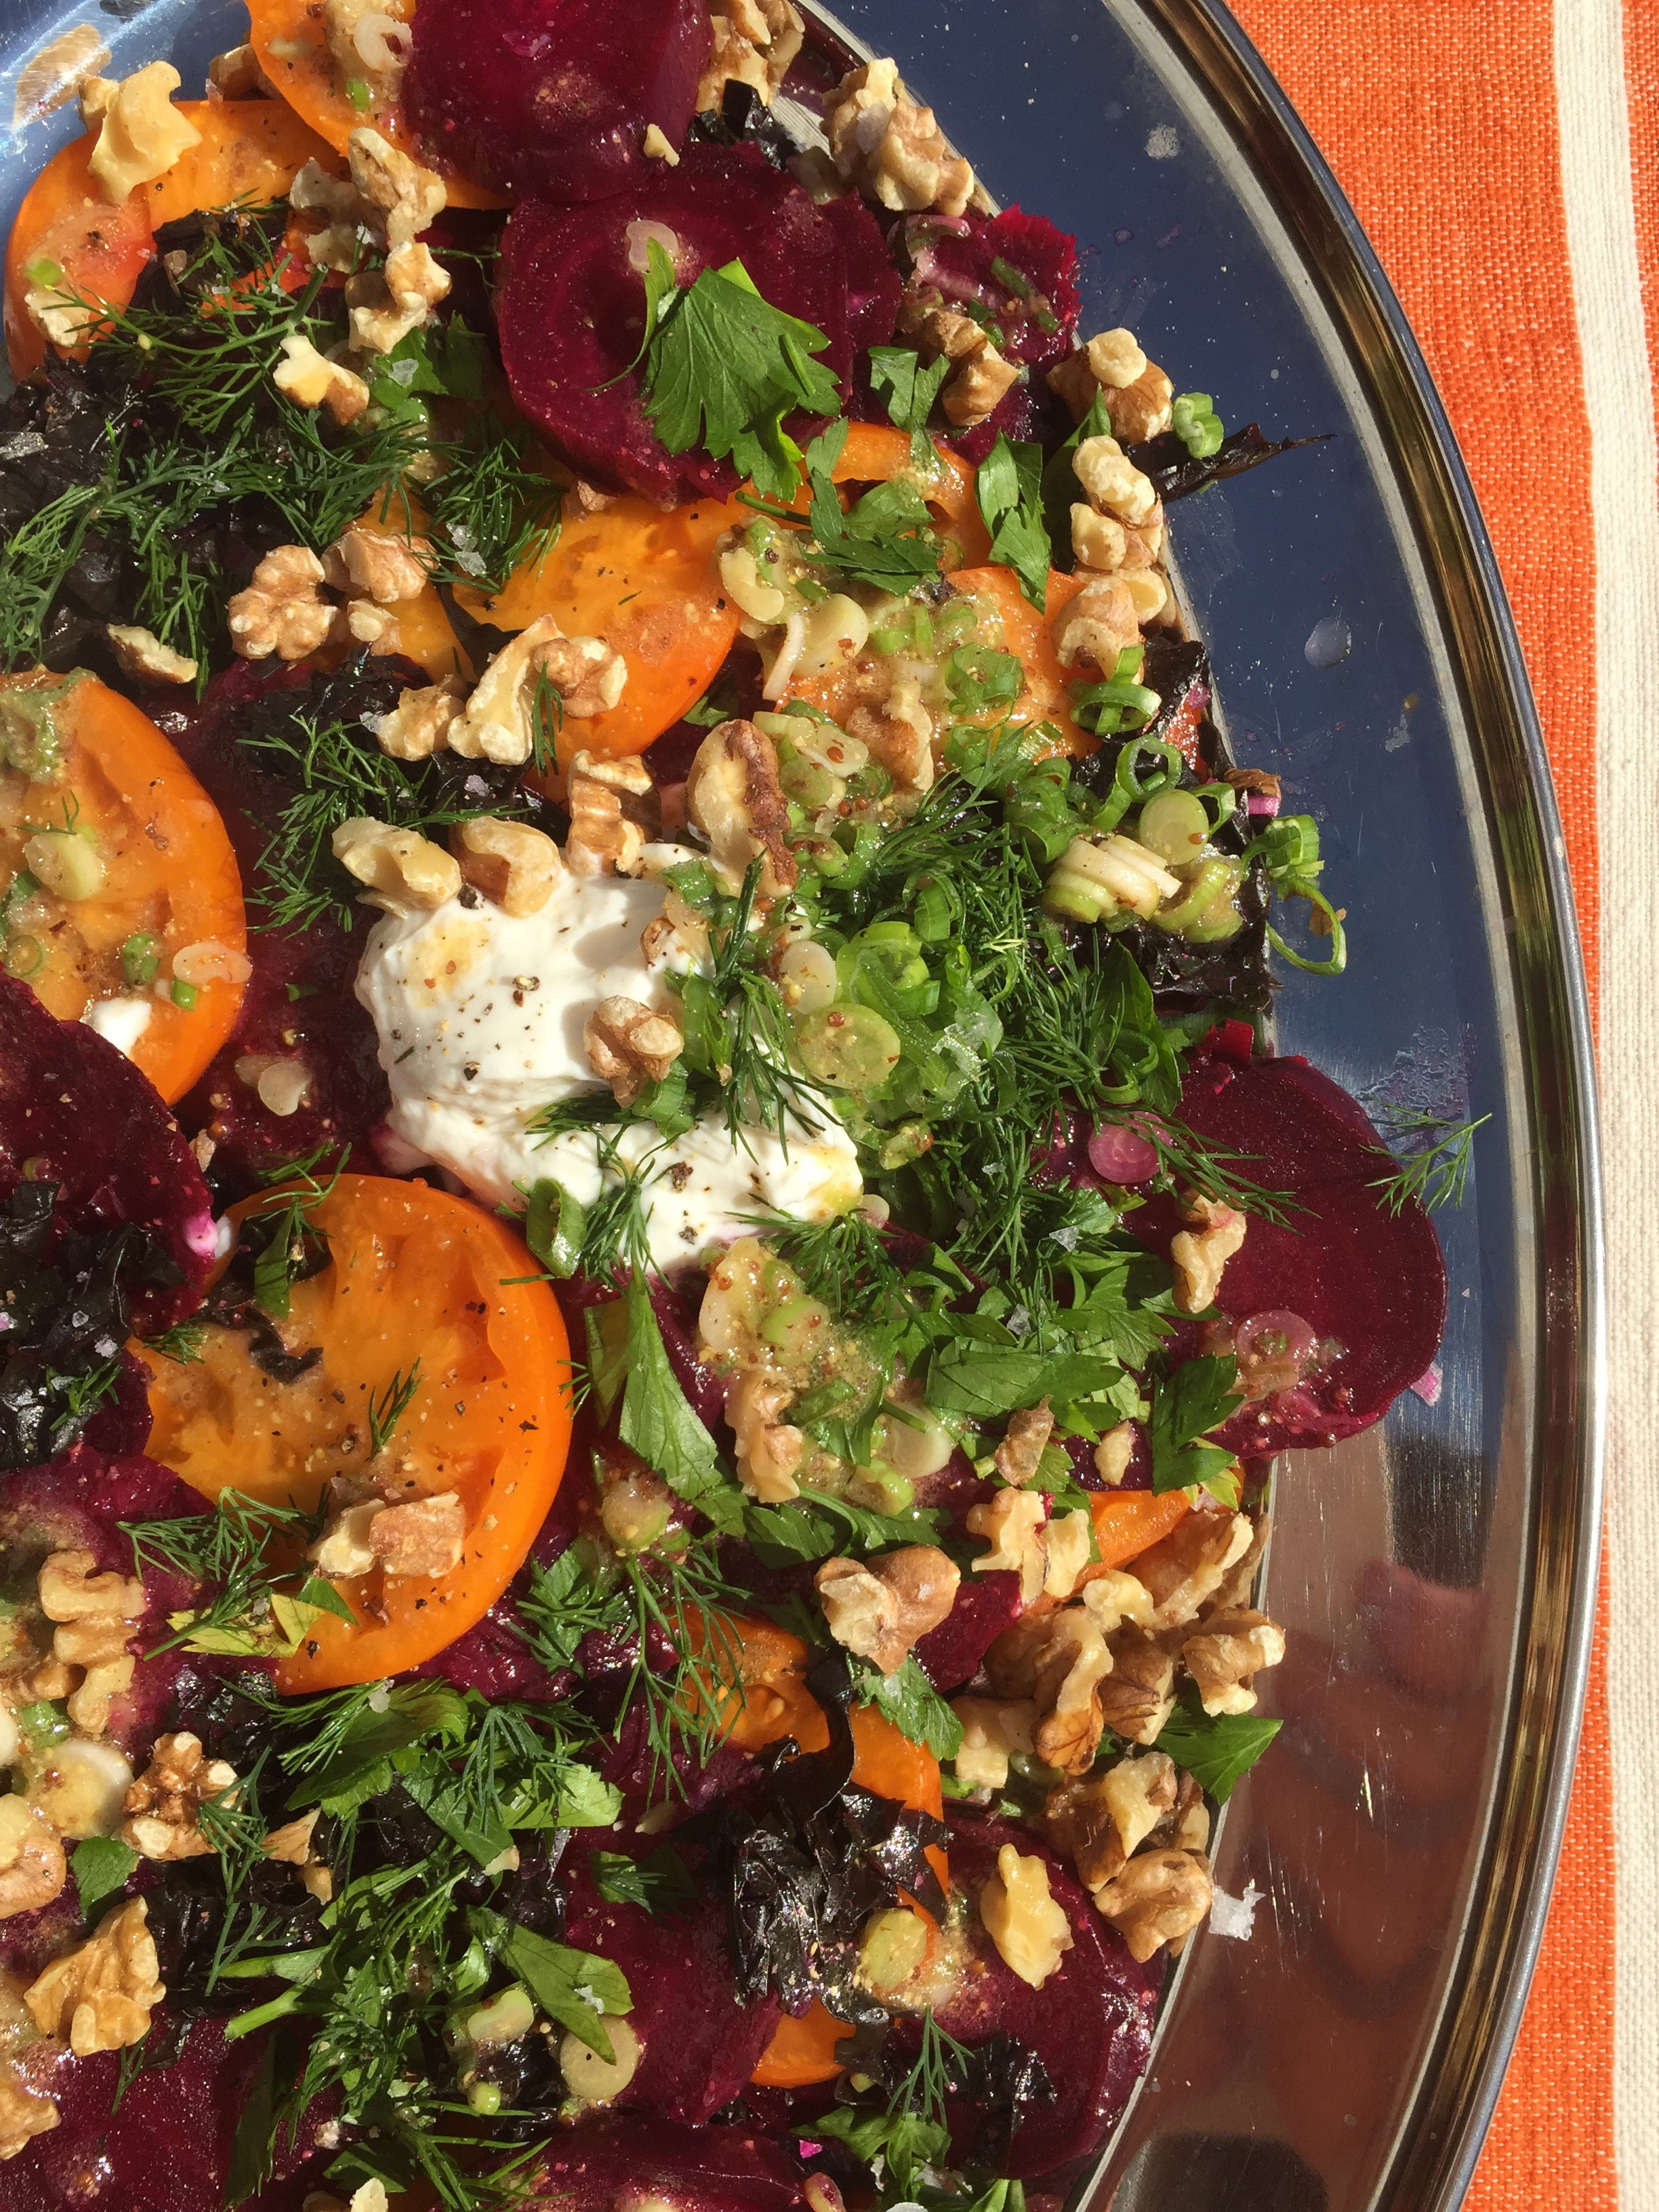 Beets and beet greens team up with tomatoes for a delicious salad ...